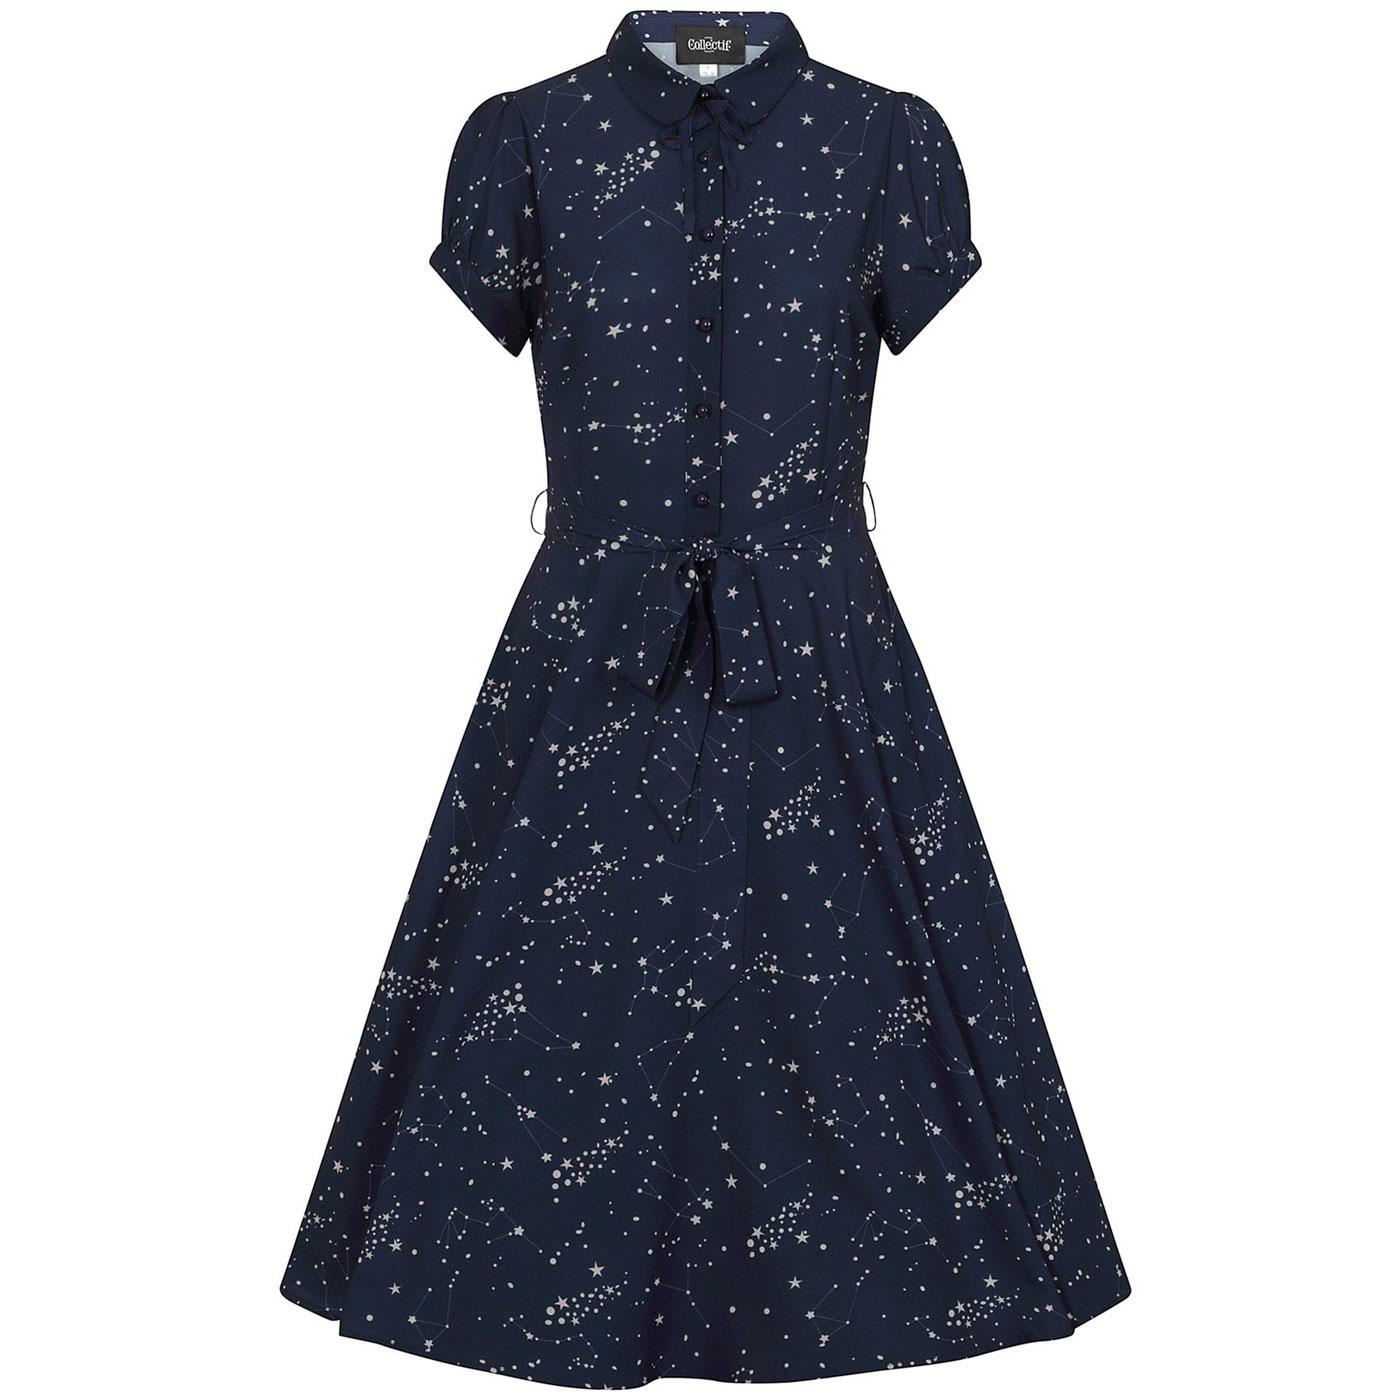 Mary Grace COLLECTIF Zodiac Constellation Dress